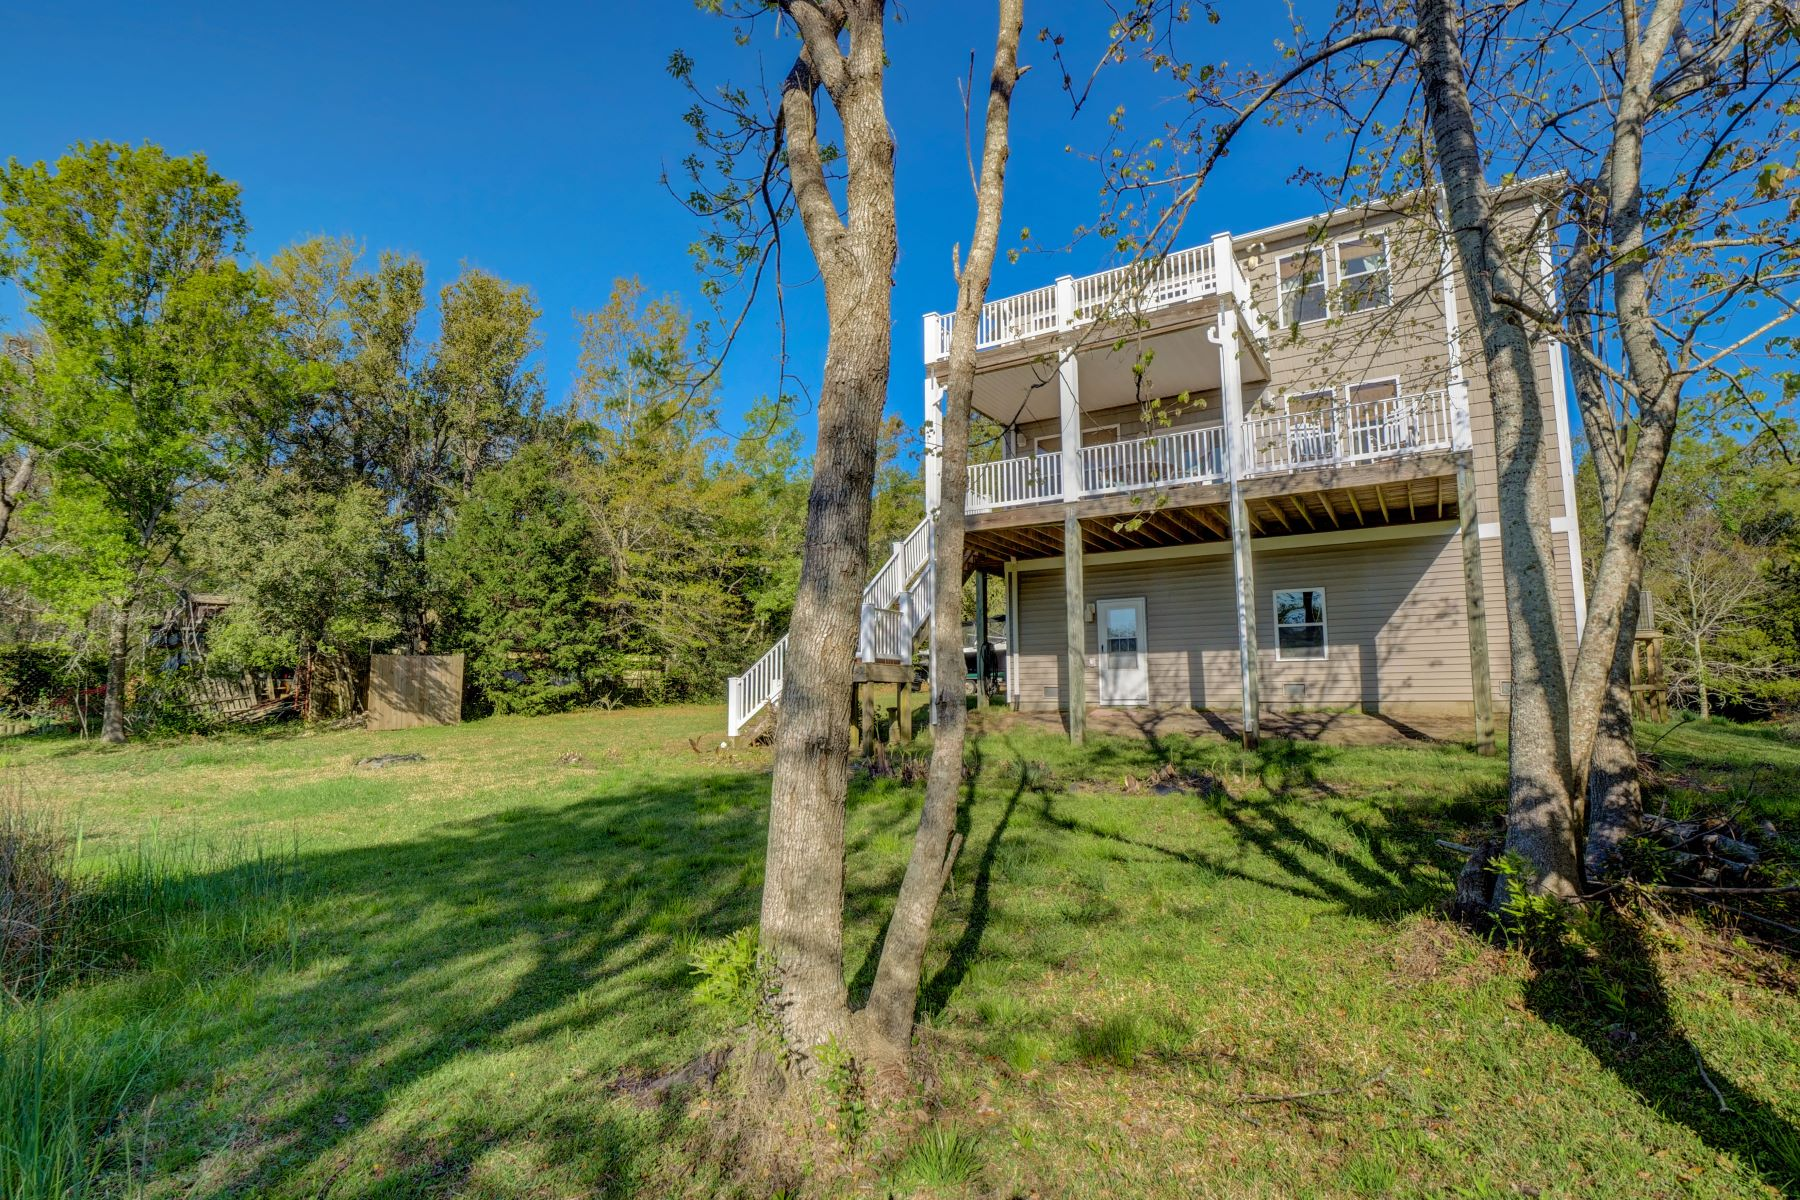 Single Family Homes for Sale at Beautifully Crafted Coastal Family Home 409 Brierwood Trail Hampstead, North Carolina 28443 United States